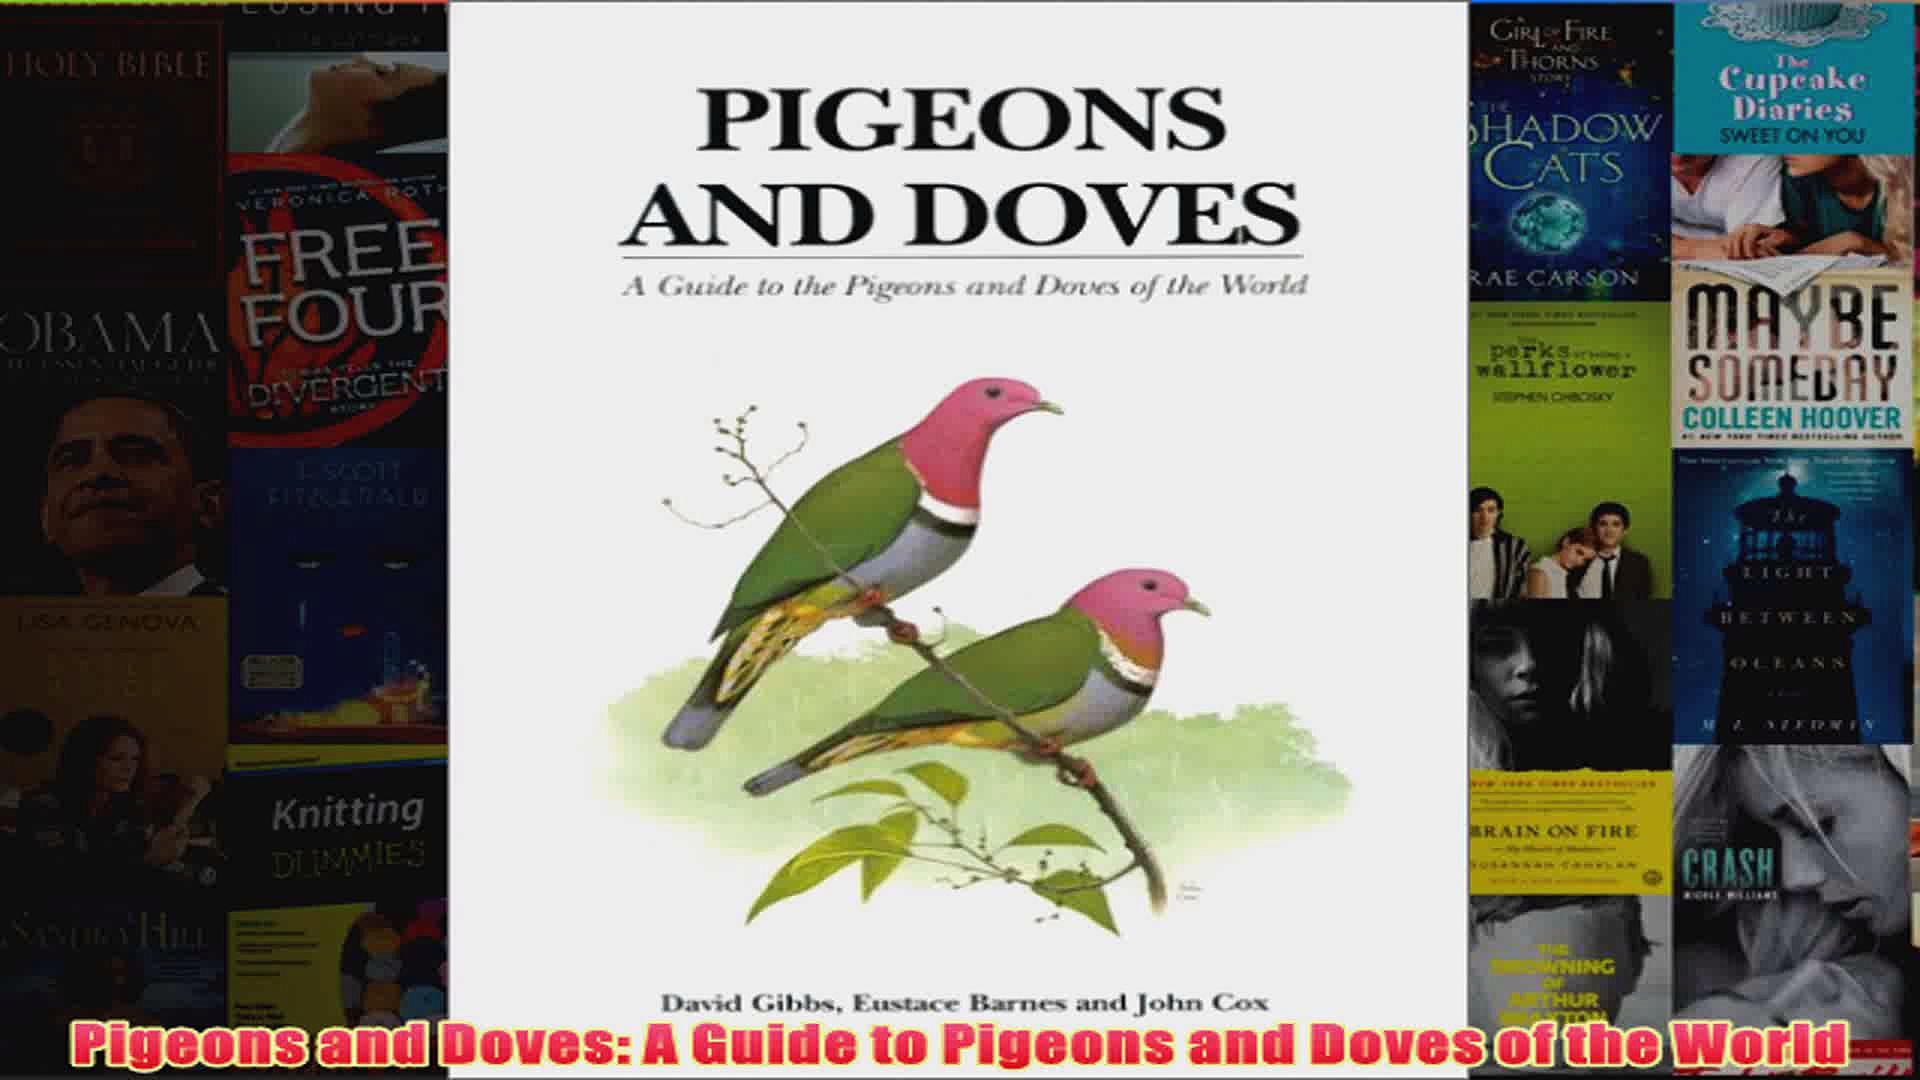 Pigeons and Doves A Guide to Pigeons and Doves of the World